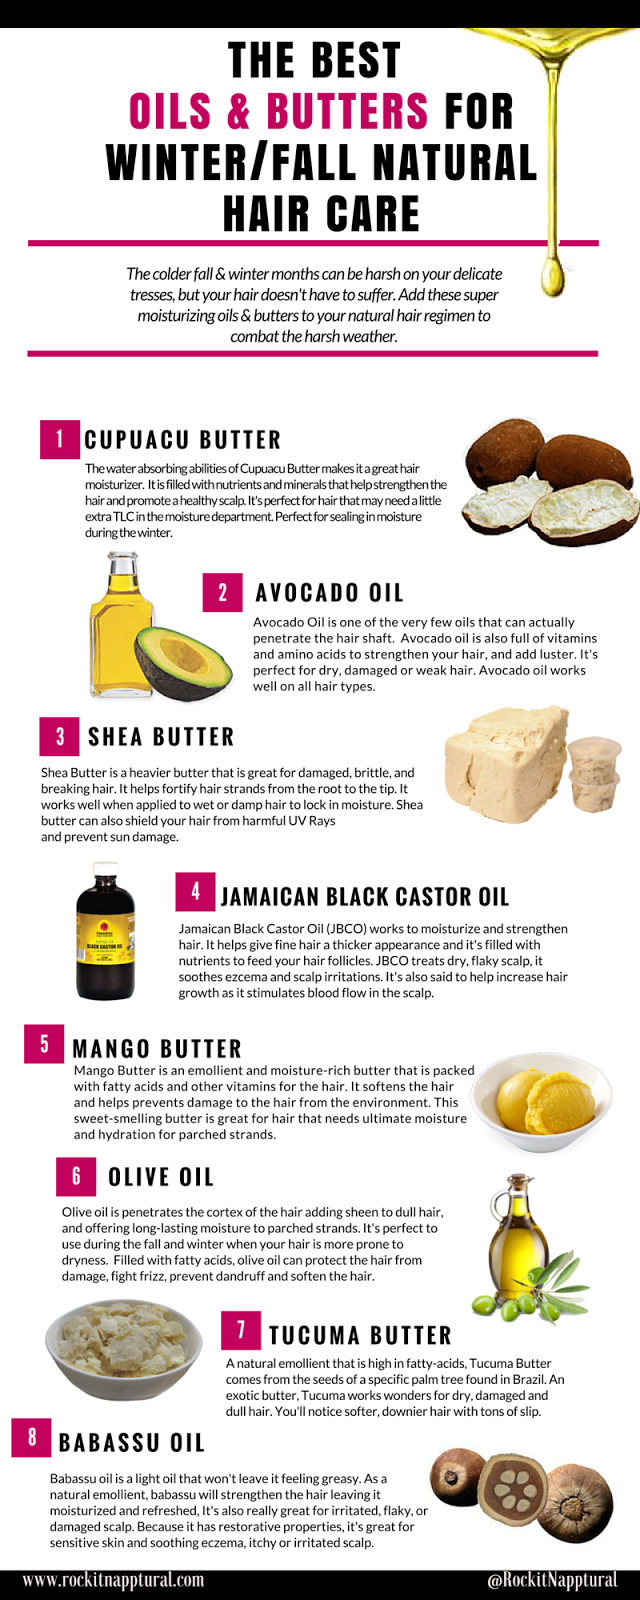 The best oils u butters for fallwinter hair care infographic